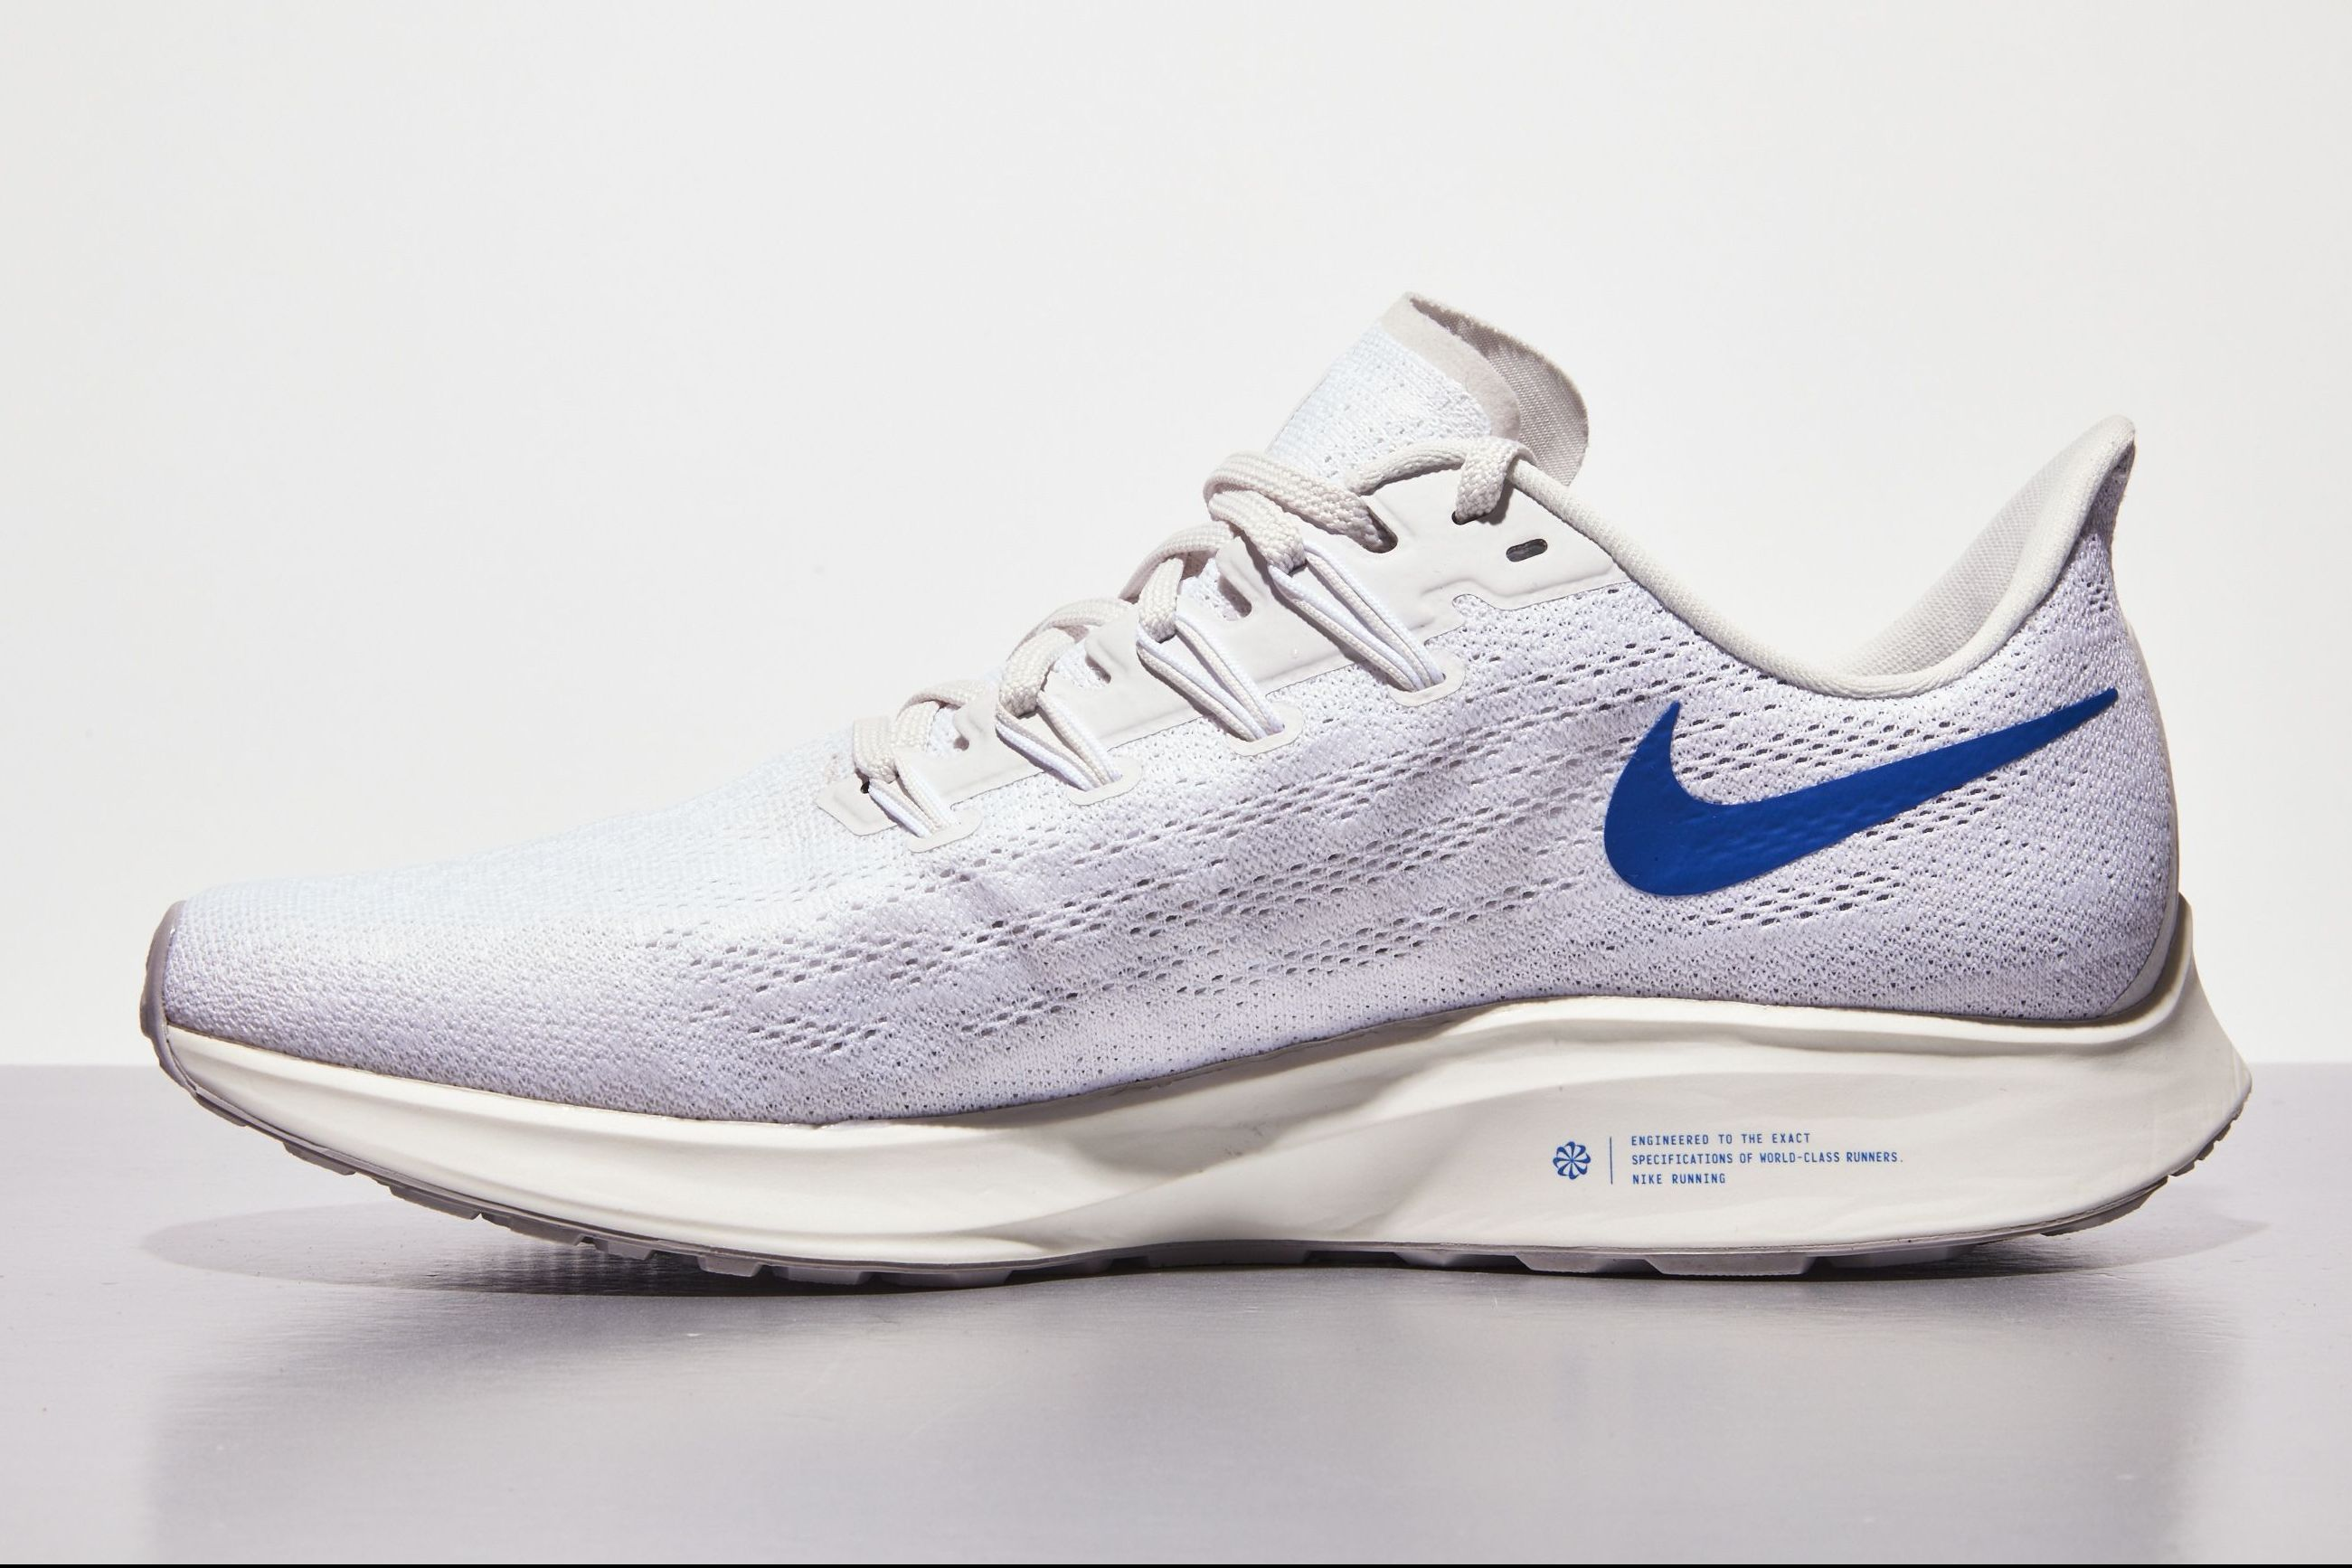 buy online c1bcc e35a1 Best Nike Running Shoes | Nike Shoe Reviews 2019